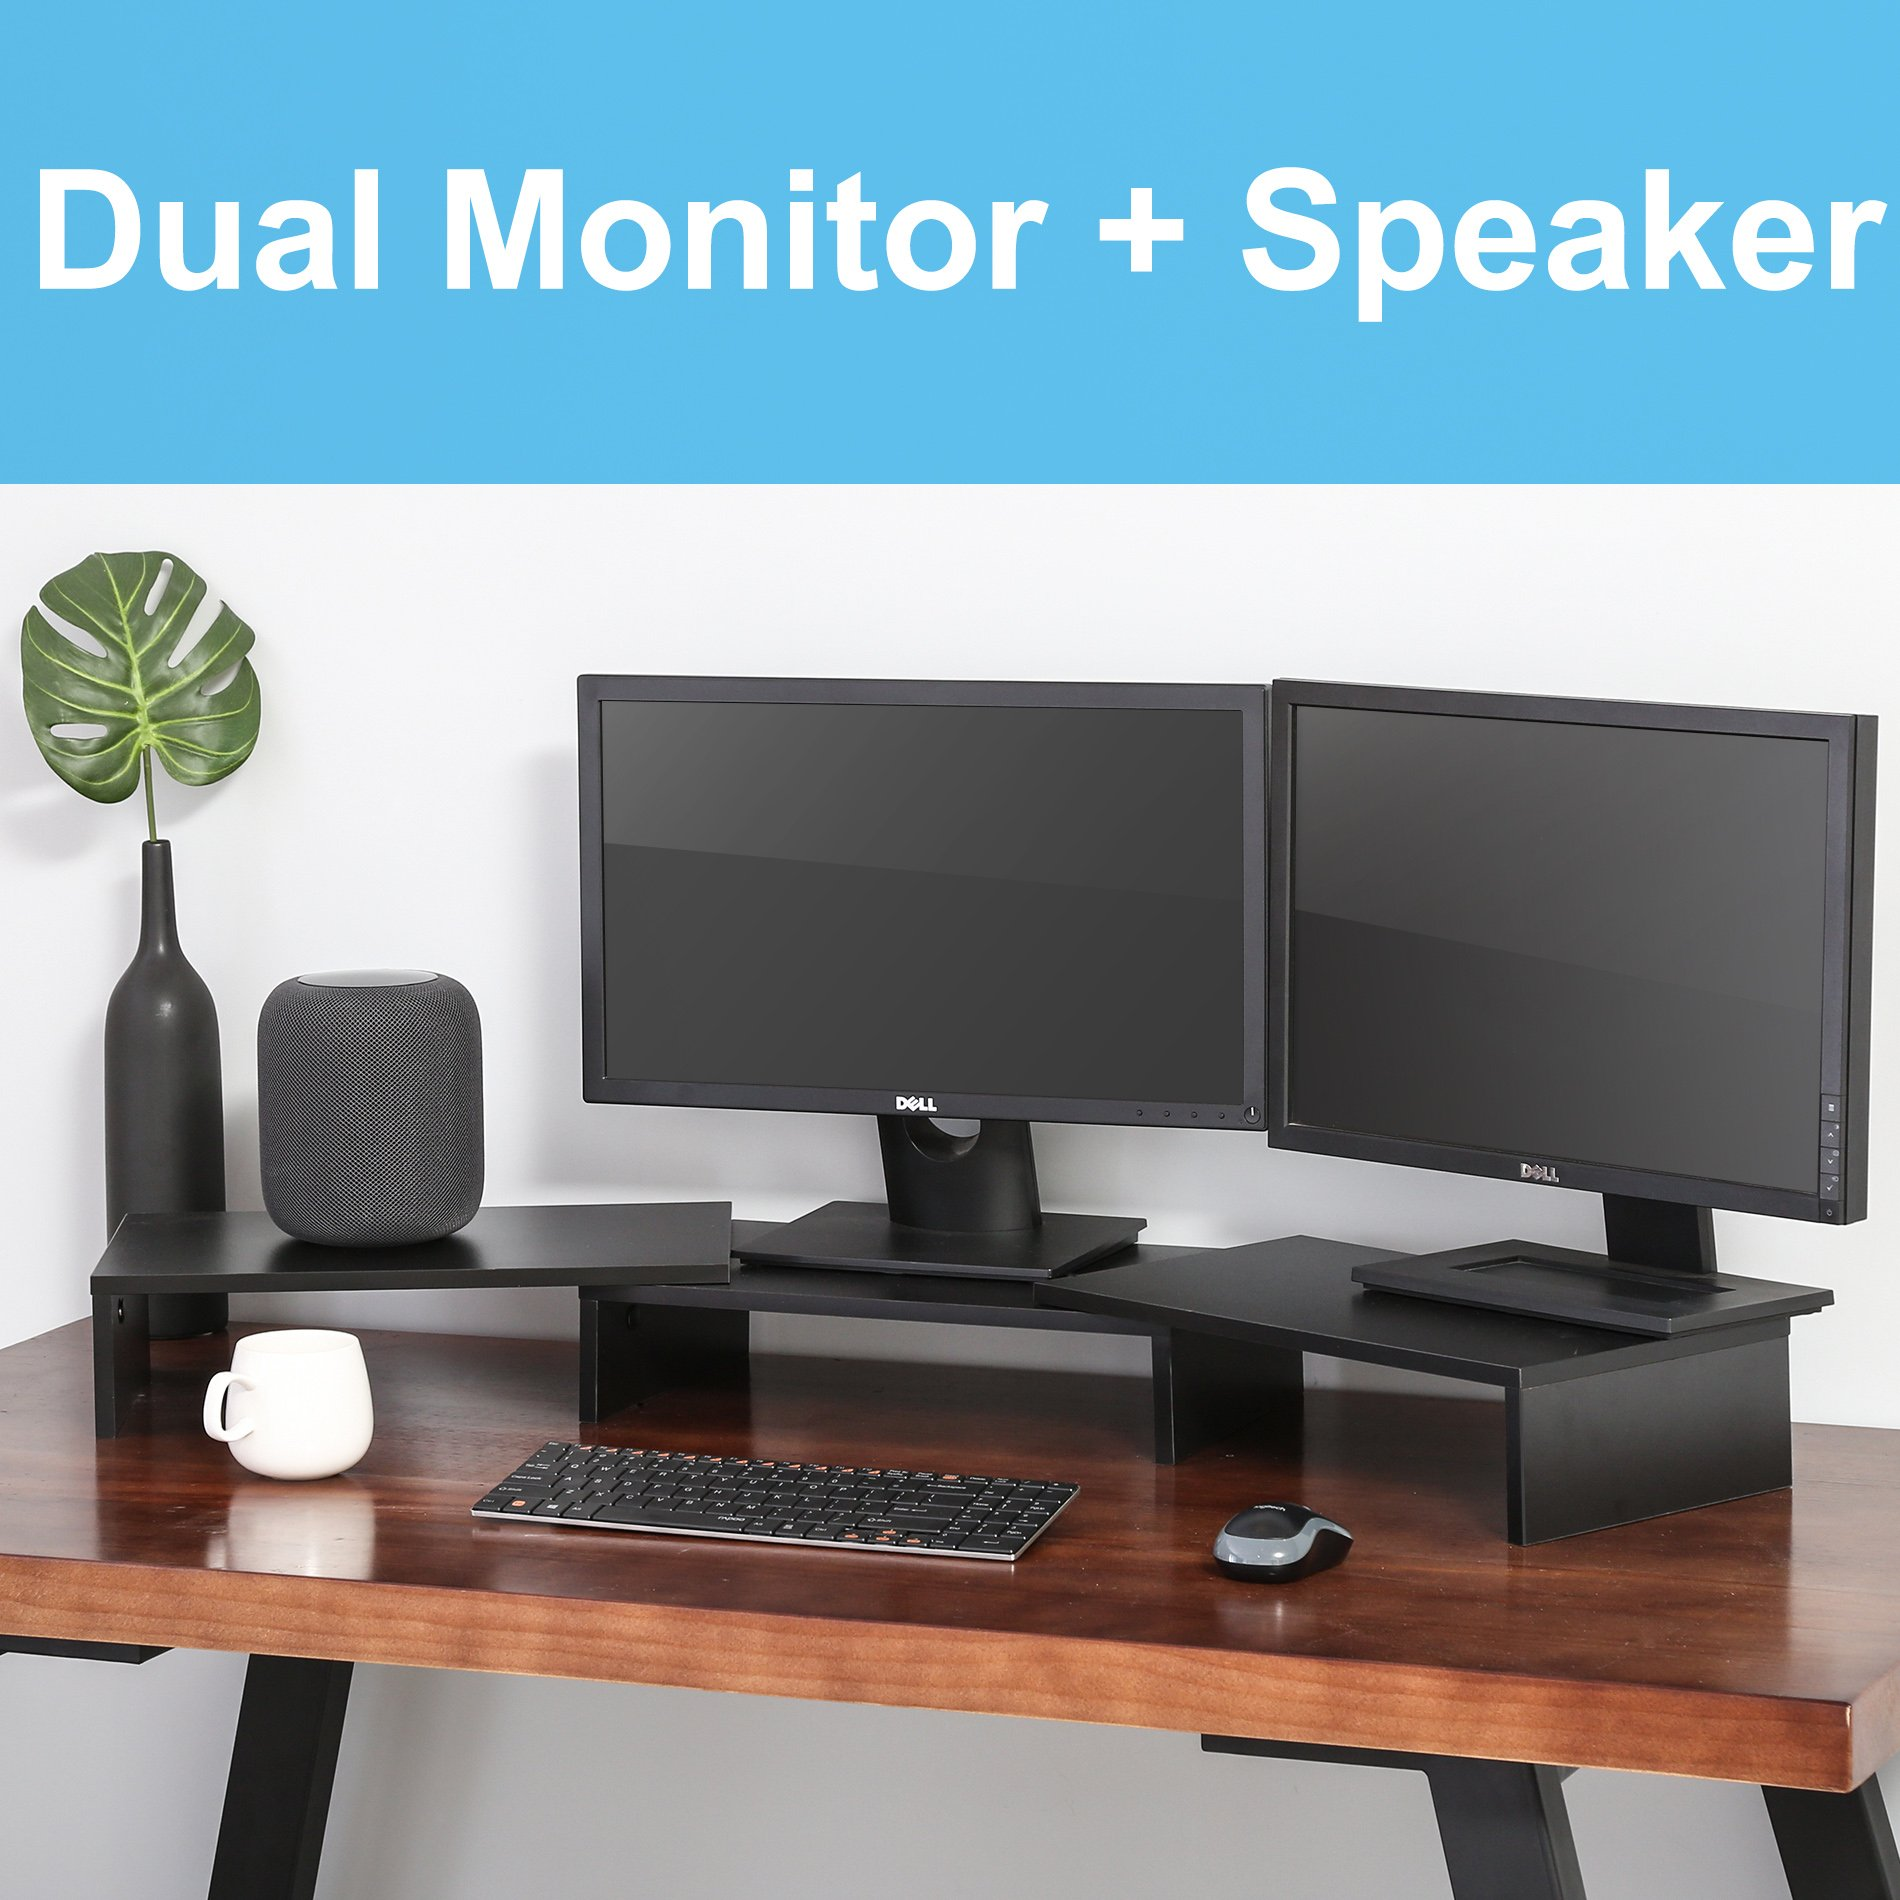 FITUEYES 3 Shelf Monitor Stand Riser with Adjustable Length and Angle,DT108001WB by FITUEYES (Image #4)